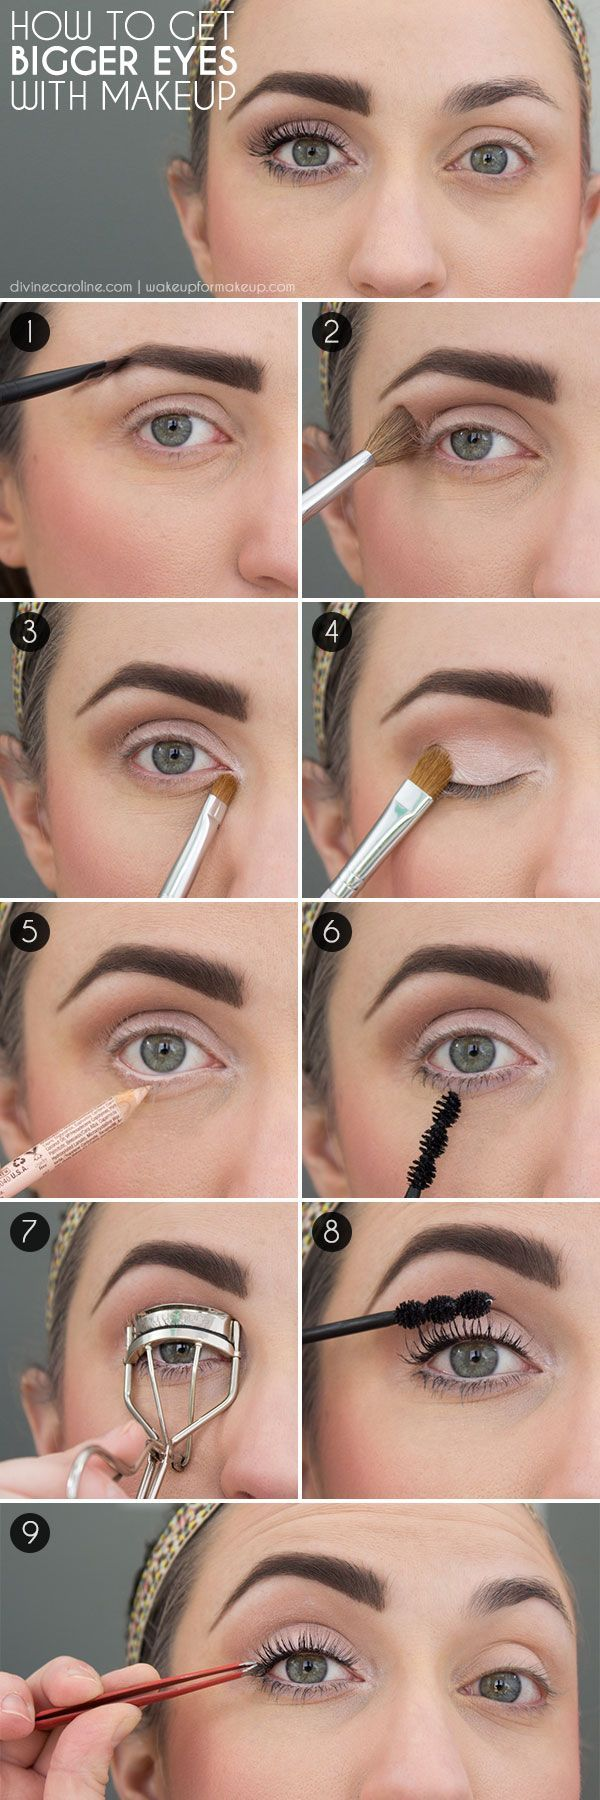 Check out beauty blogger Ivy's step-by-step guide on how to make your eyes bigger with makeup! #beauty #makeup #eyes